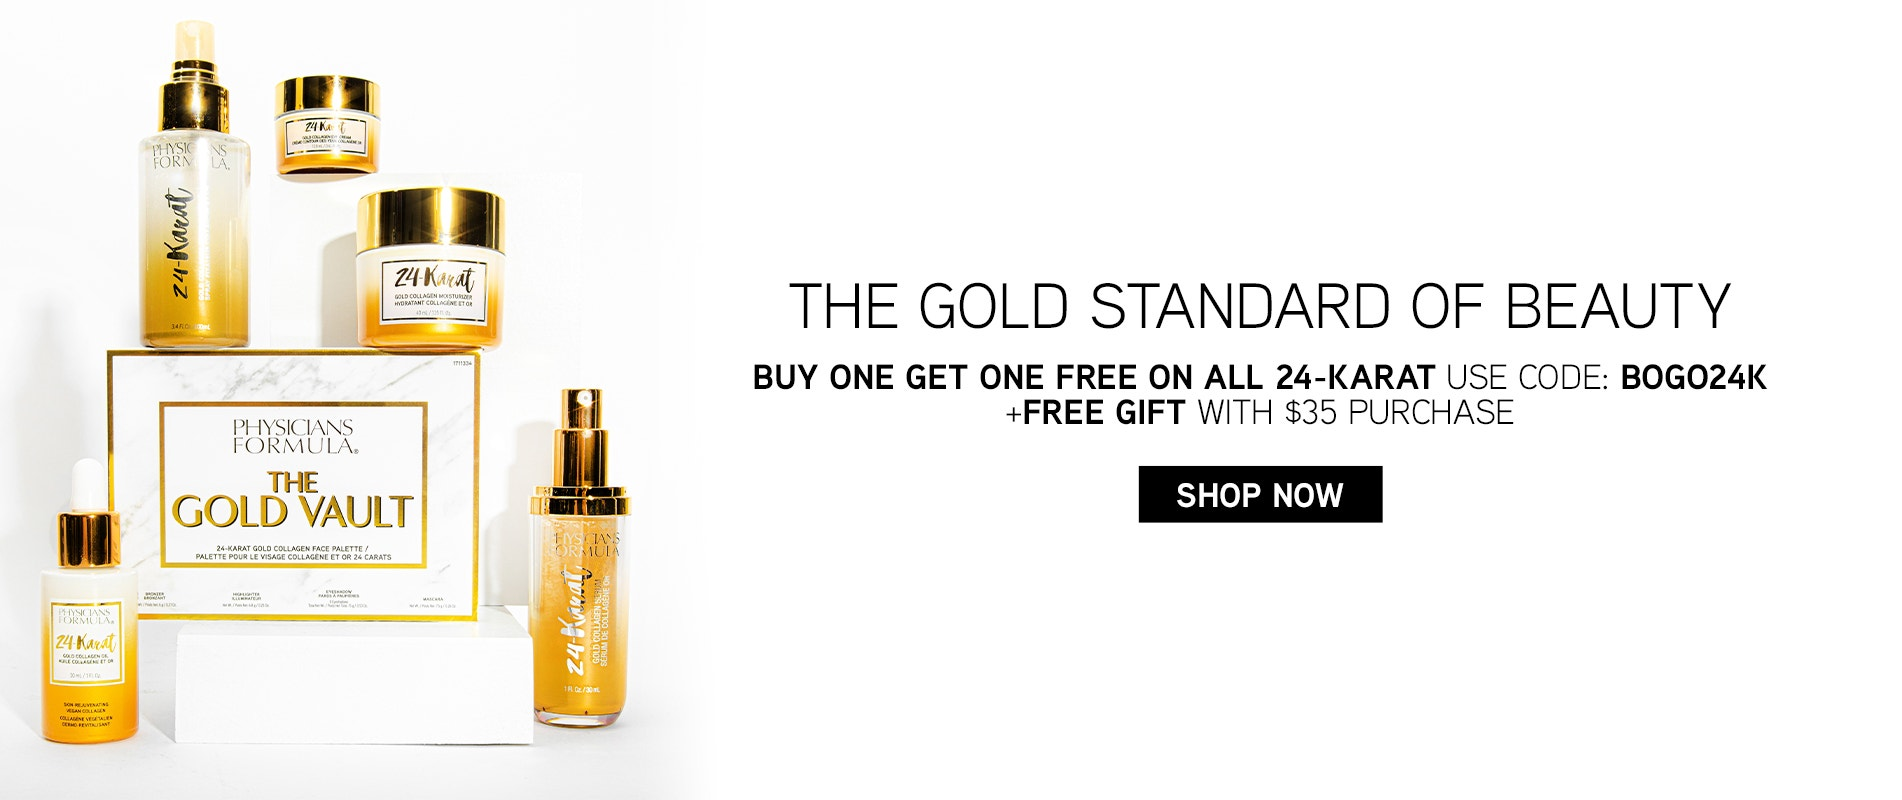 The Gold Standard of Beauty | Buy one get one free on all 24-Karat - Use Code: BOGO24K + Free Gift with $35 purchase | Shop Now | Physicians Formula | Products front facing caps fastened, with white background